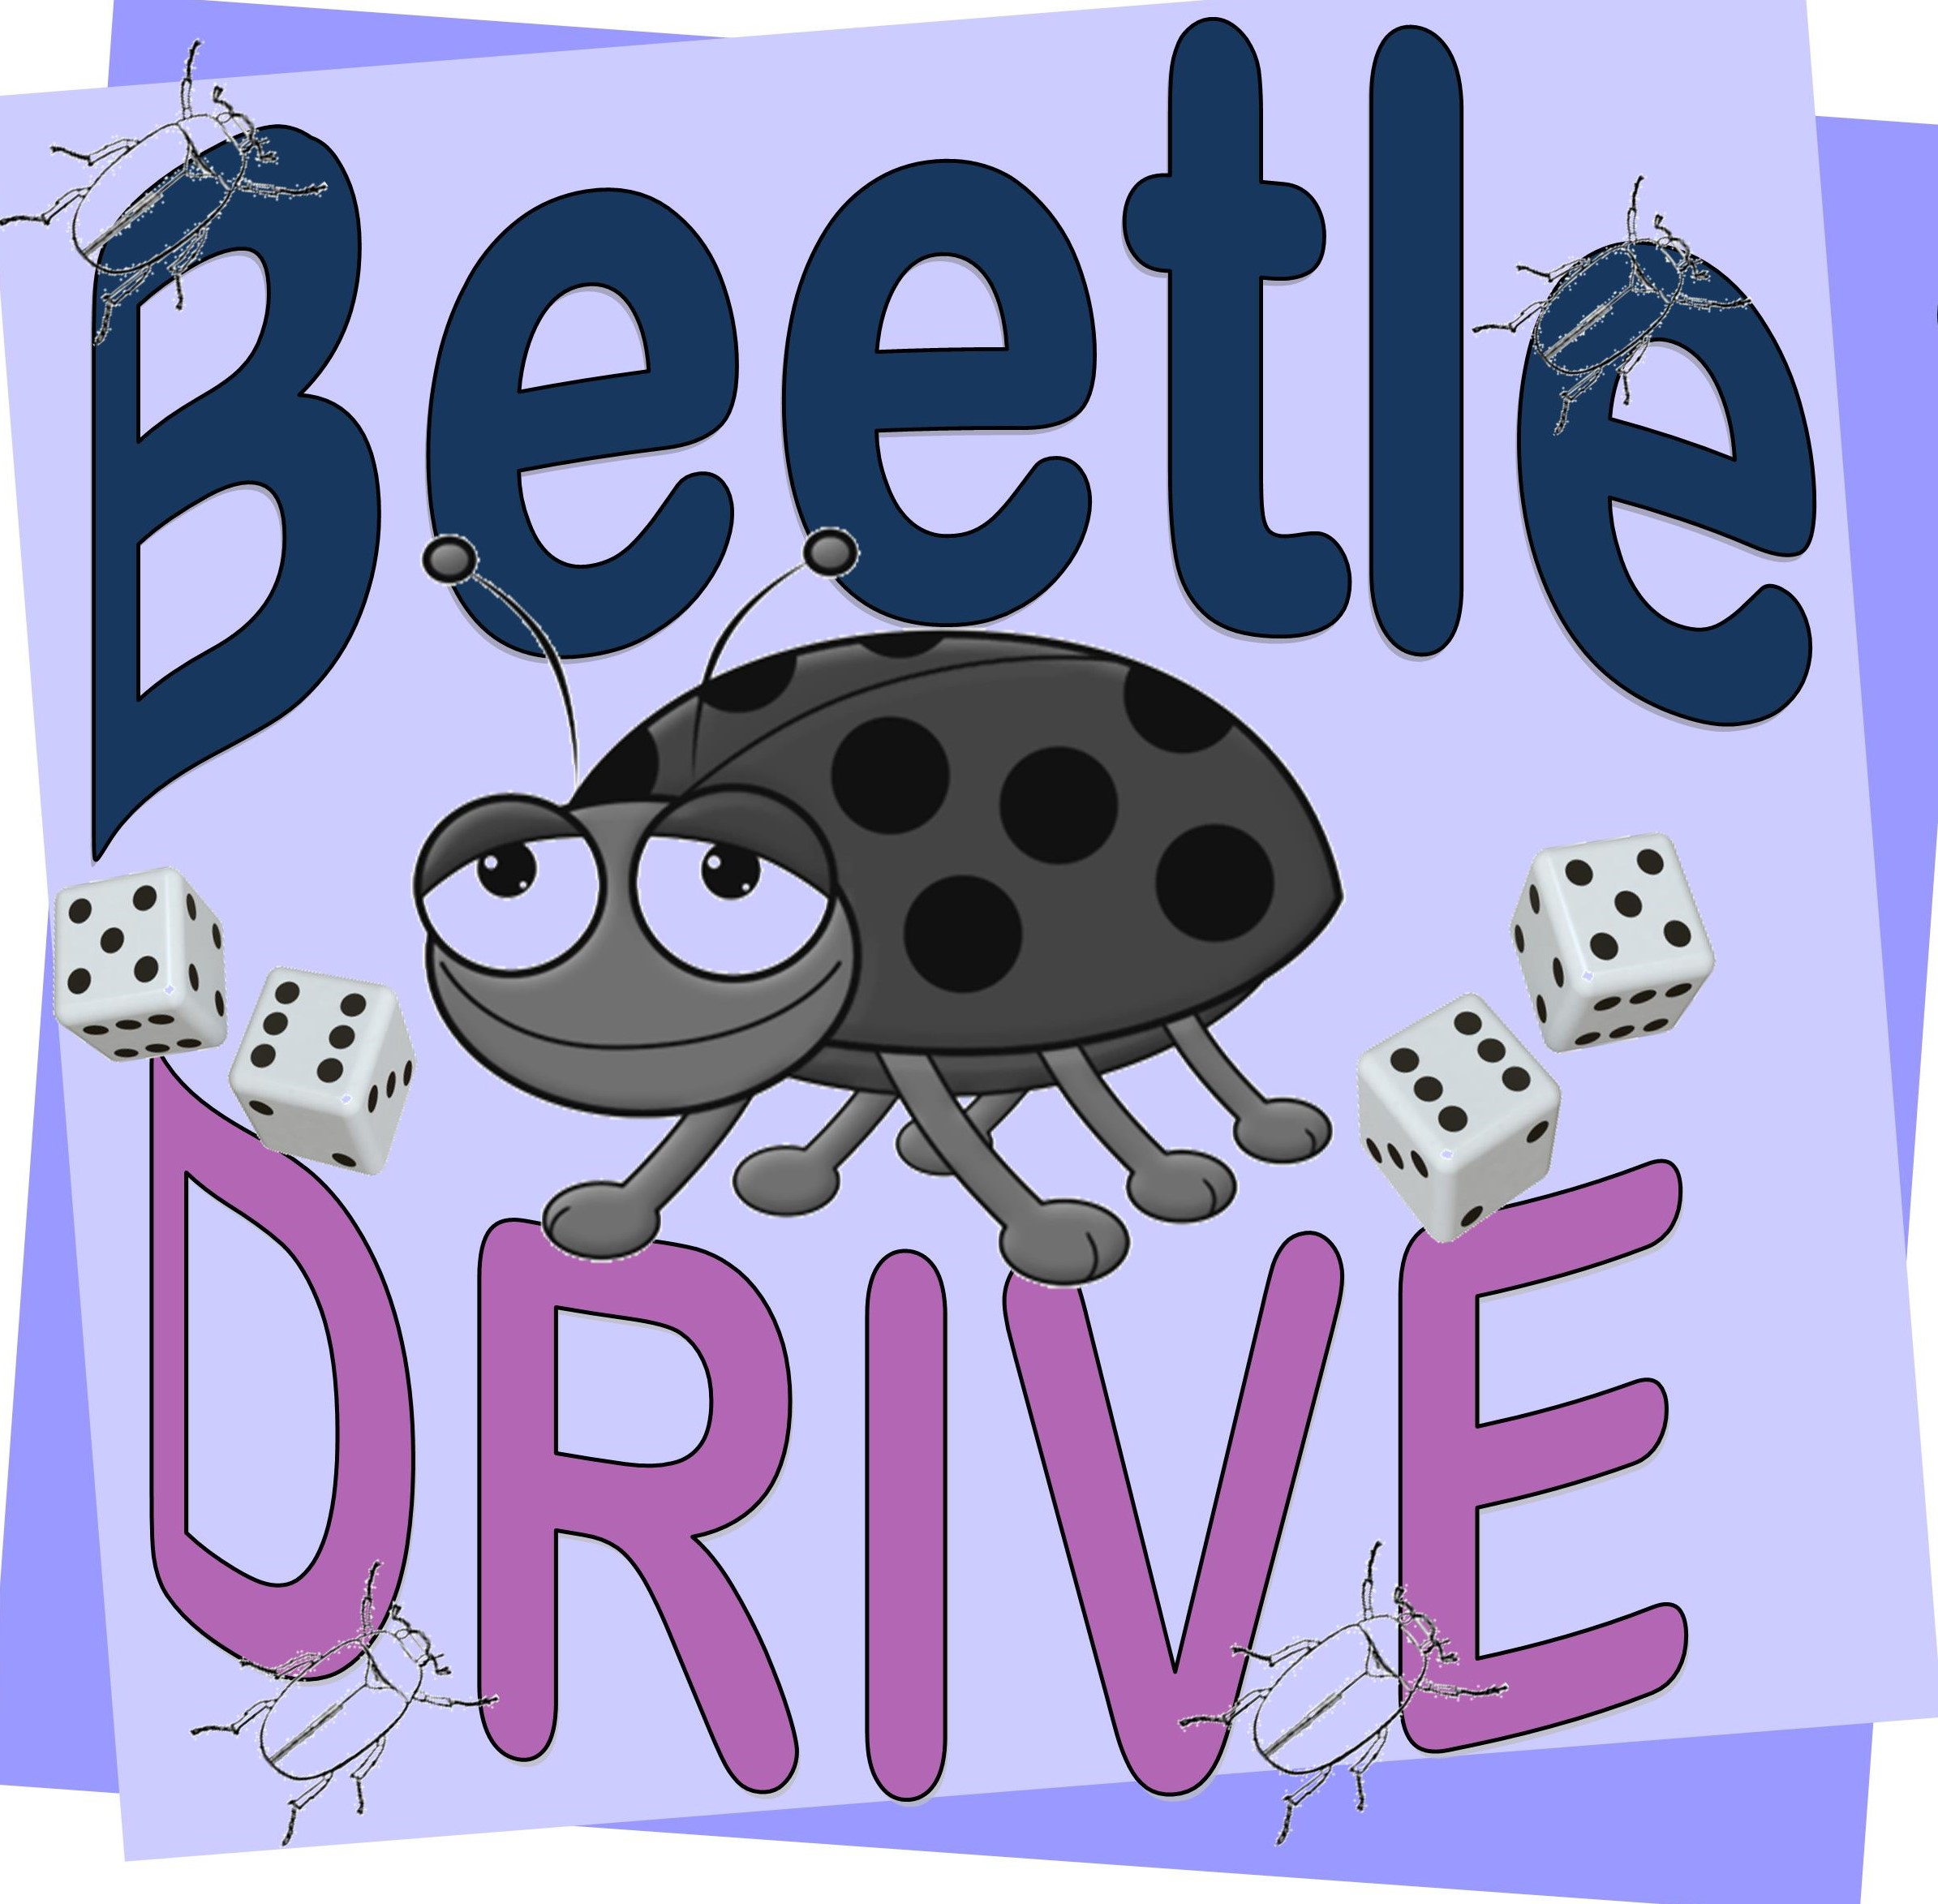 Fundraising Beetle Drive - 18 March